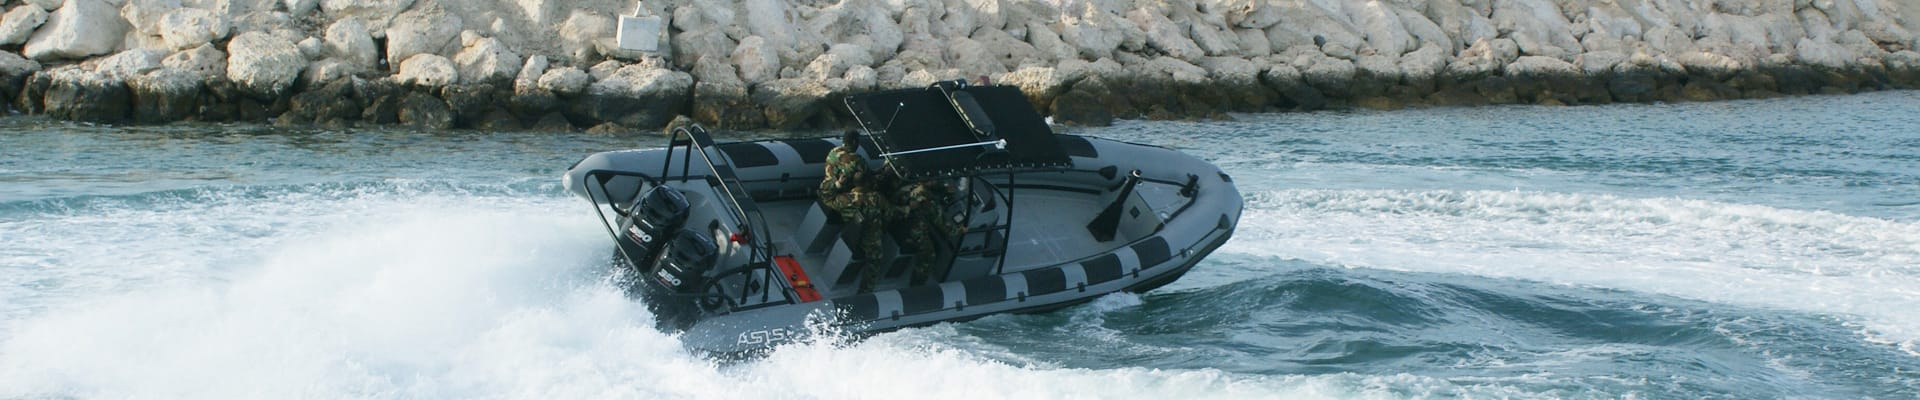 military-boat-navy-rigid-hull-inflatable-boat